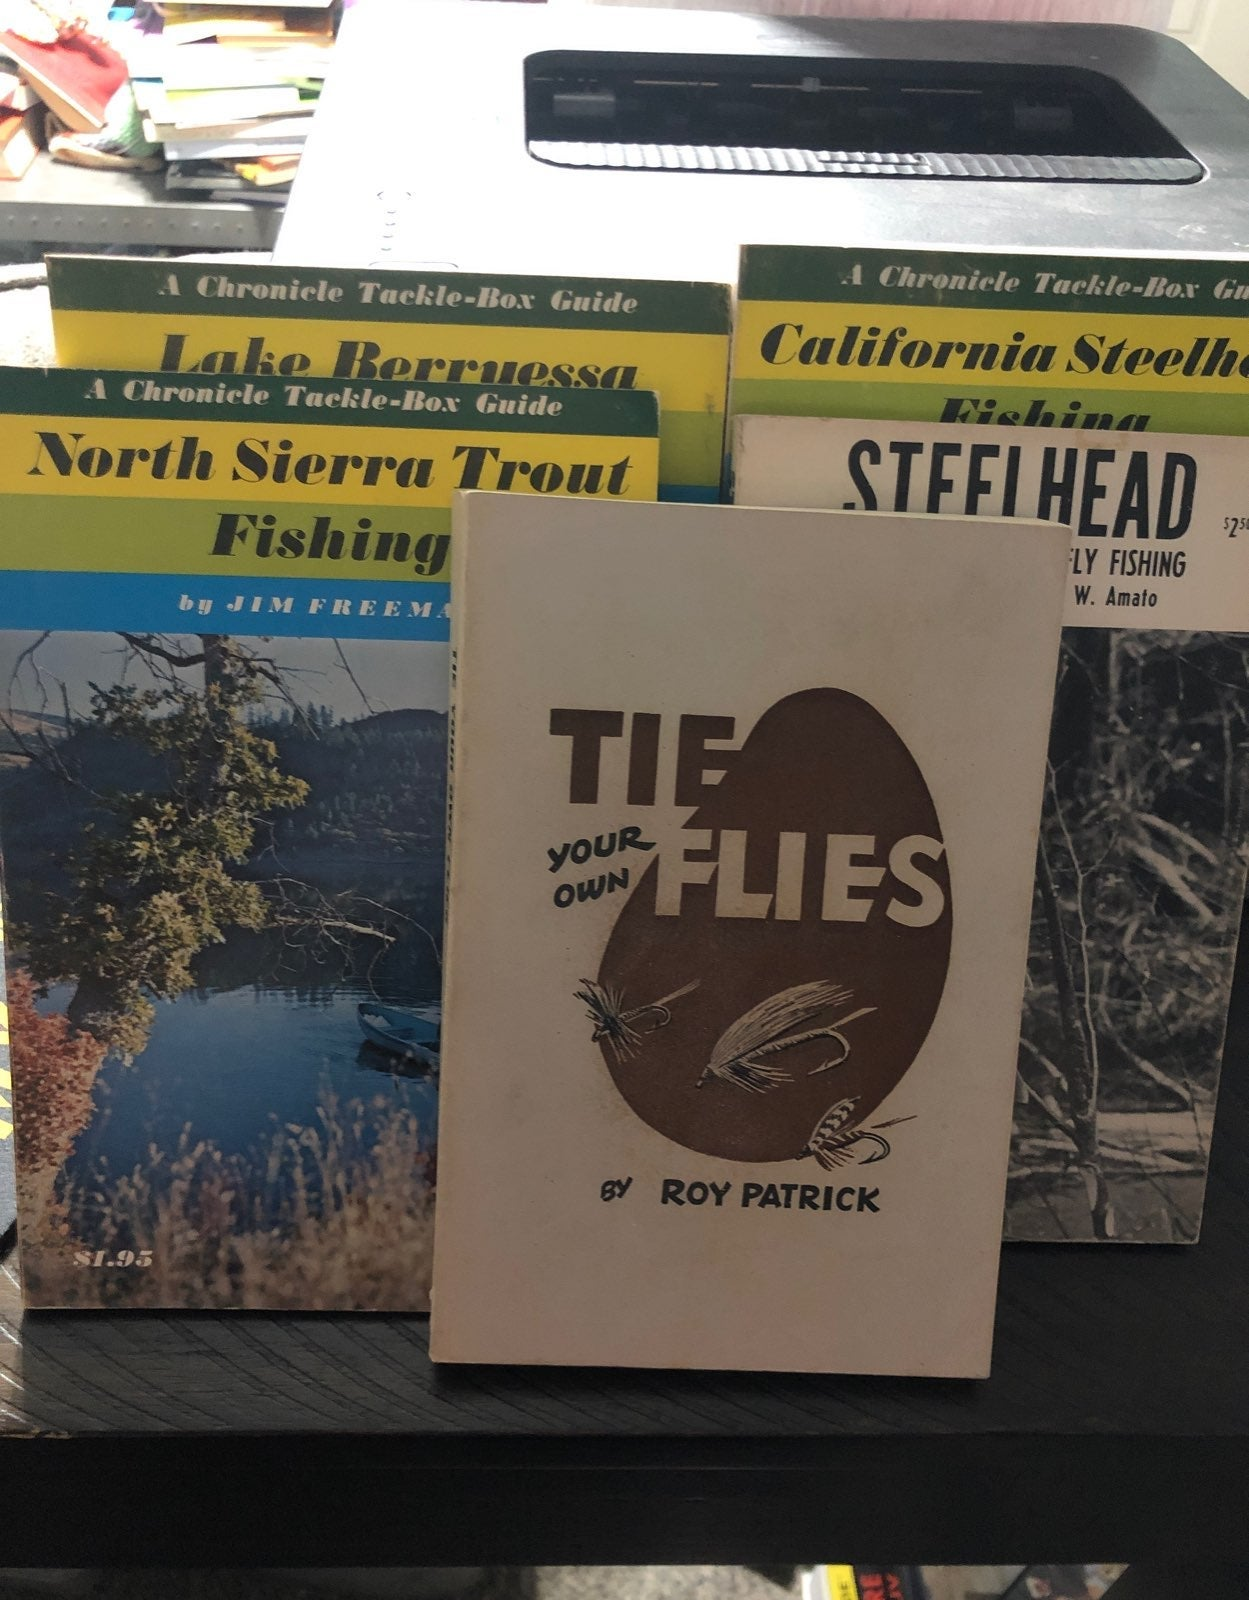 Four old fishing guides and a book on fl